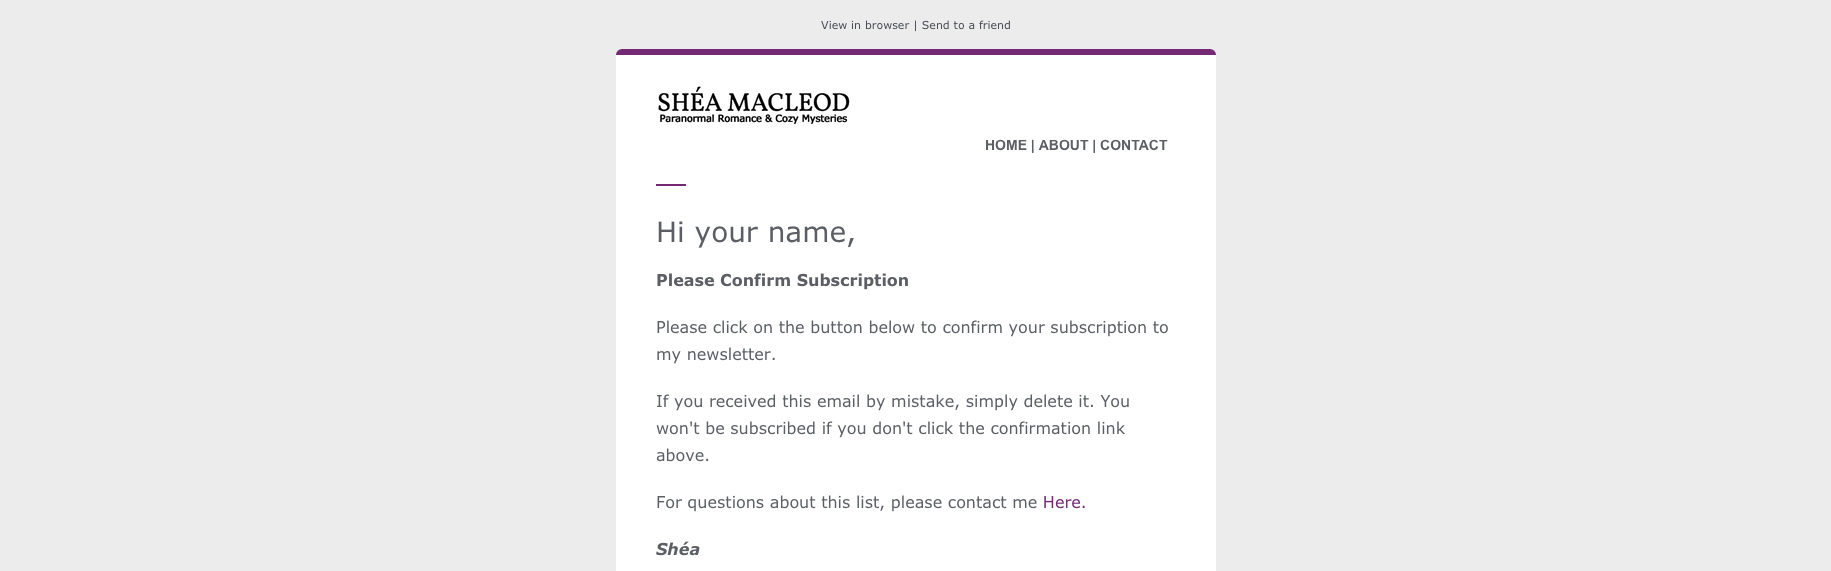 HTML Email | Notification